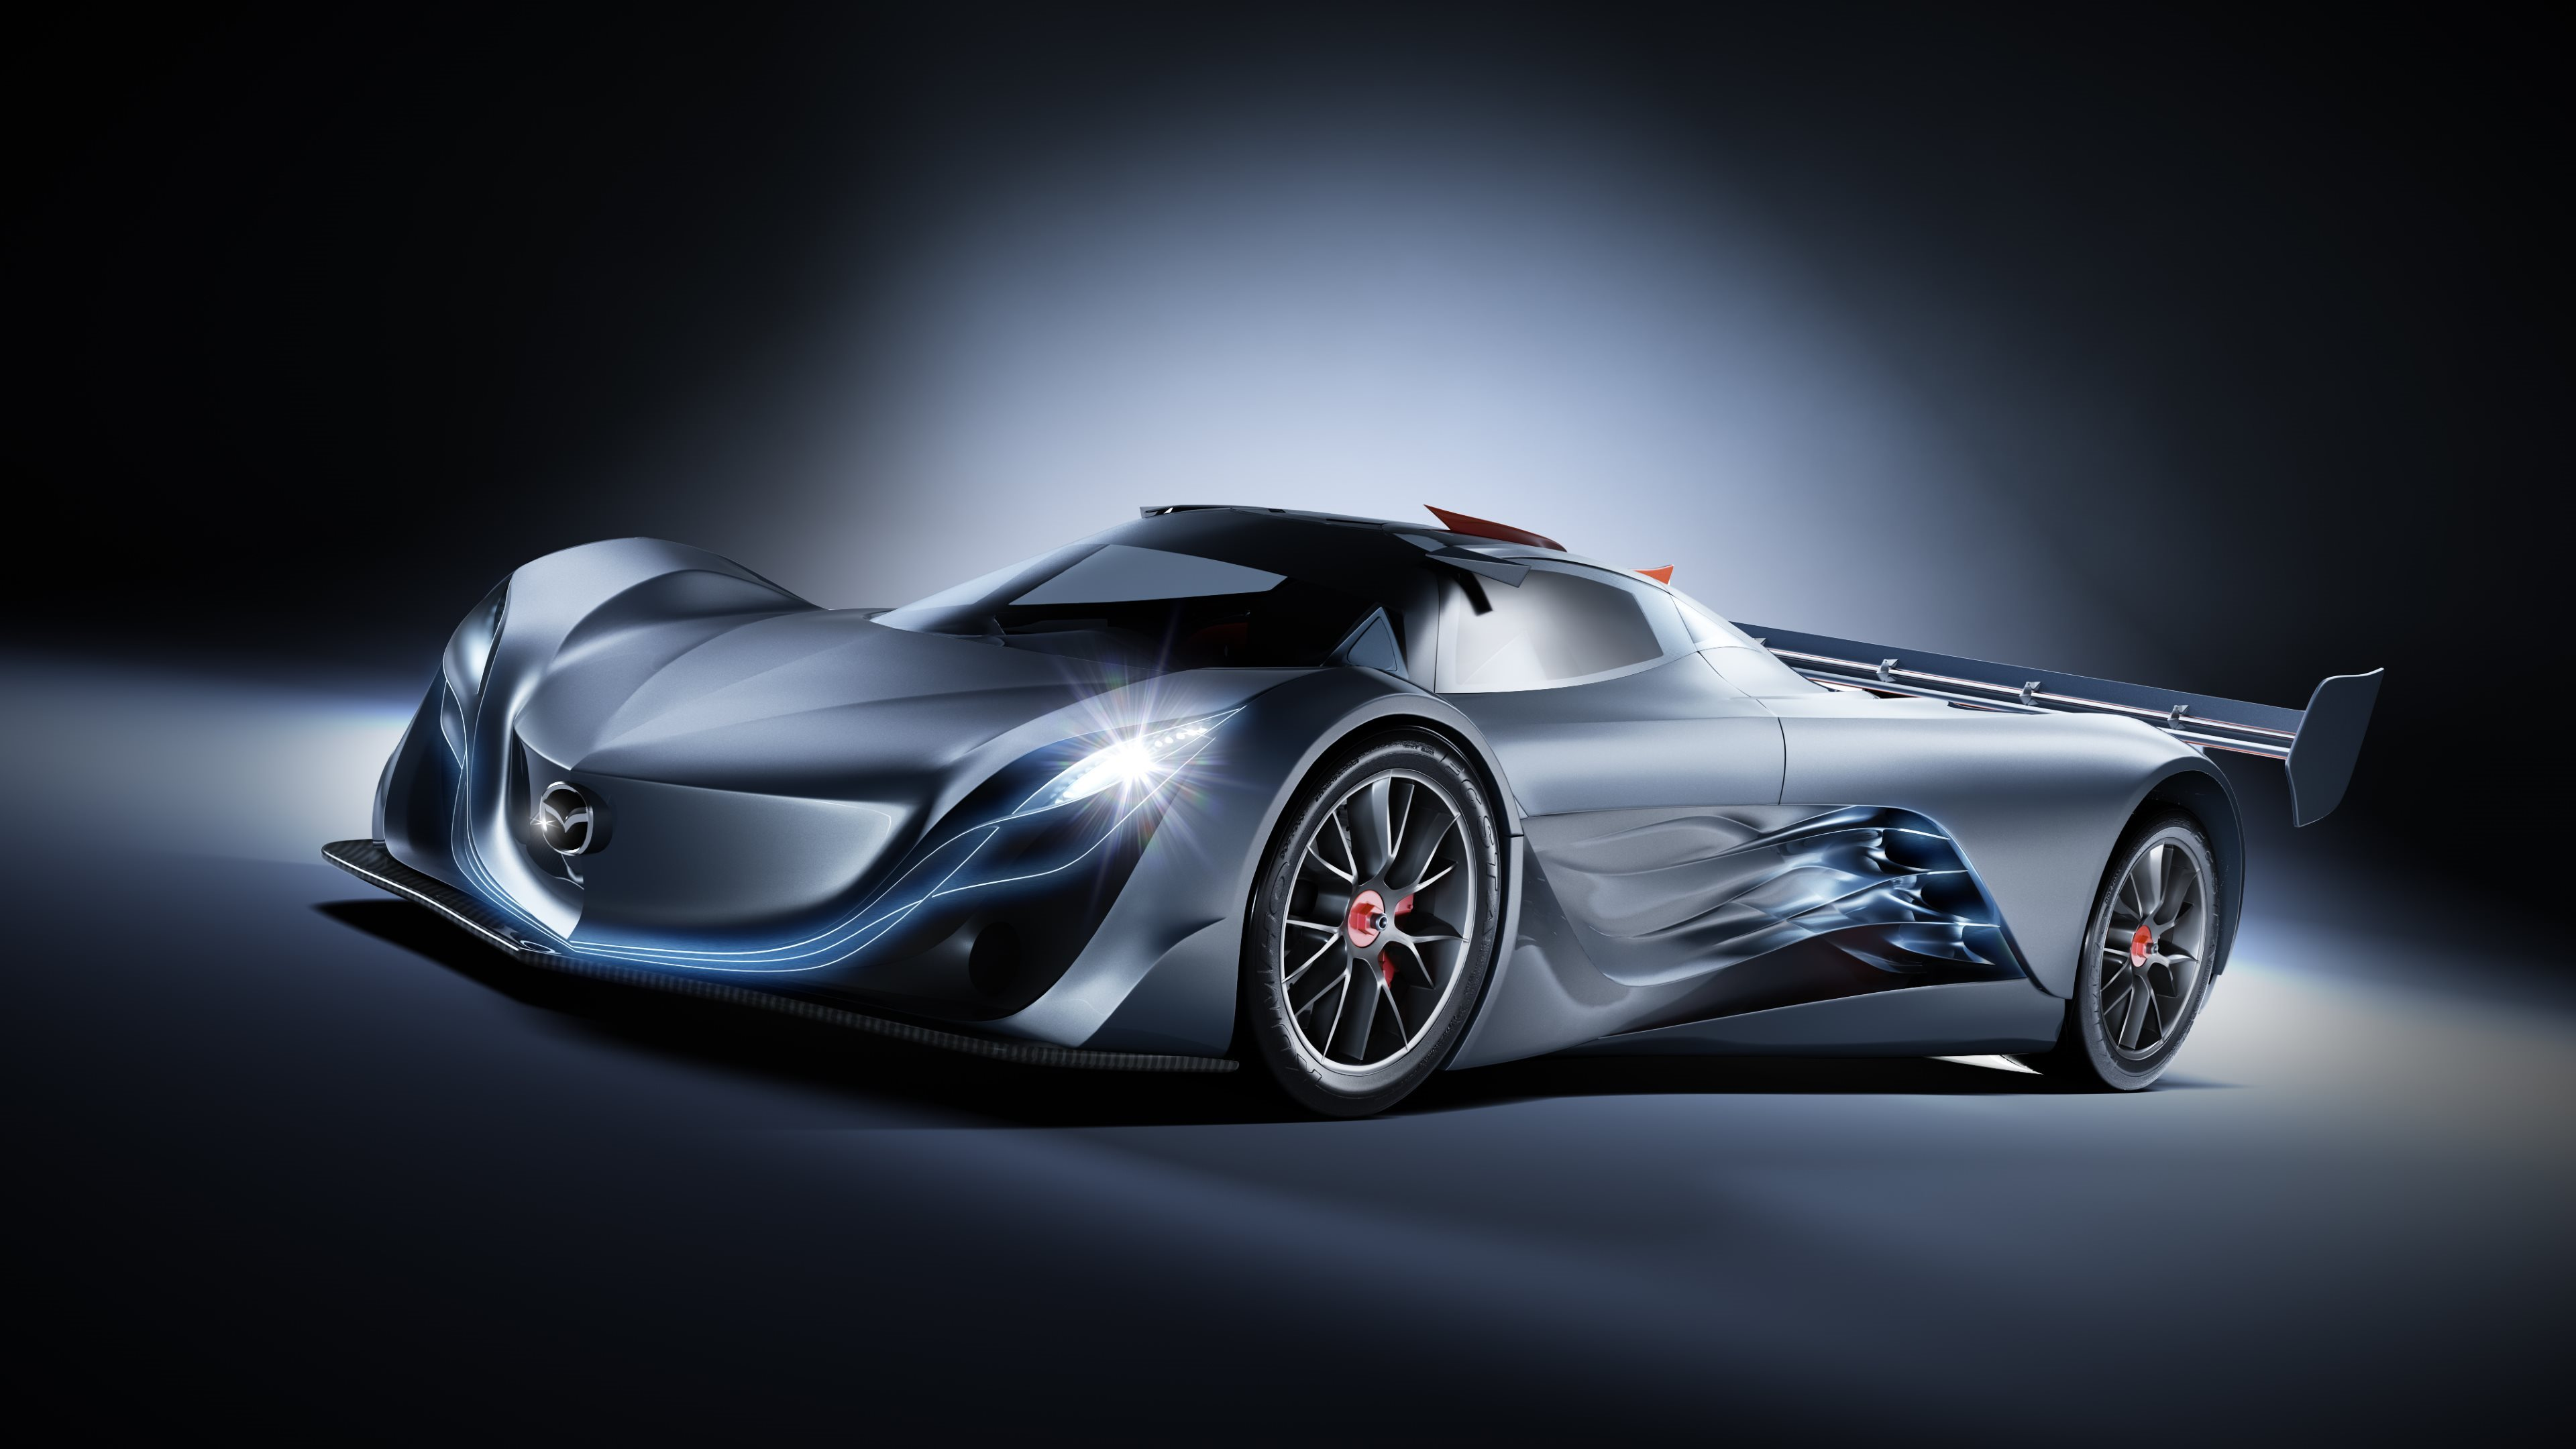 Mazda furai 4k wallpaper hd car wallpapers mazda furai 4k malvernweather Gallery